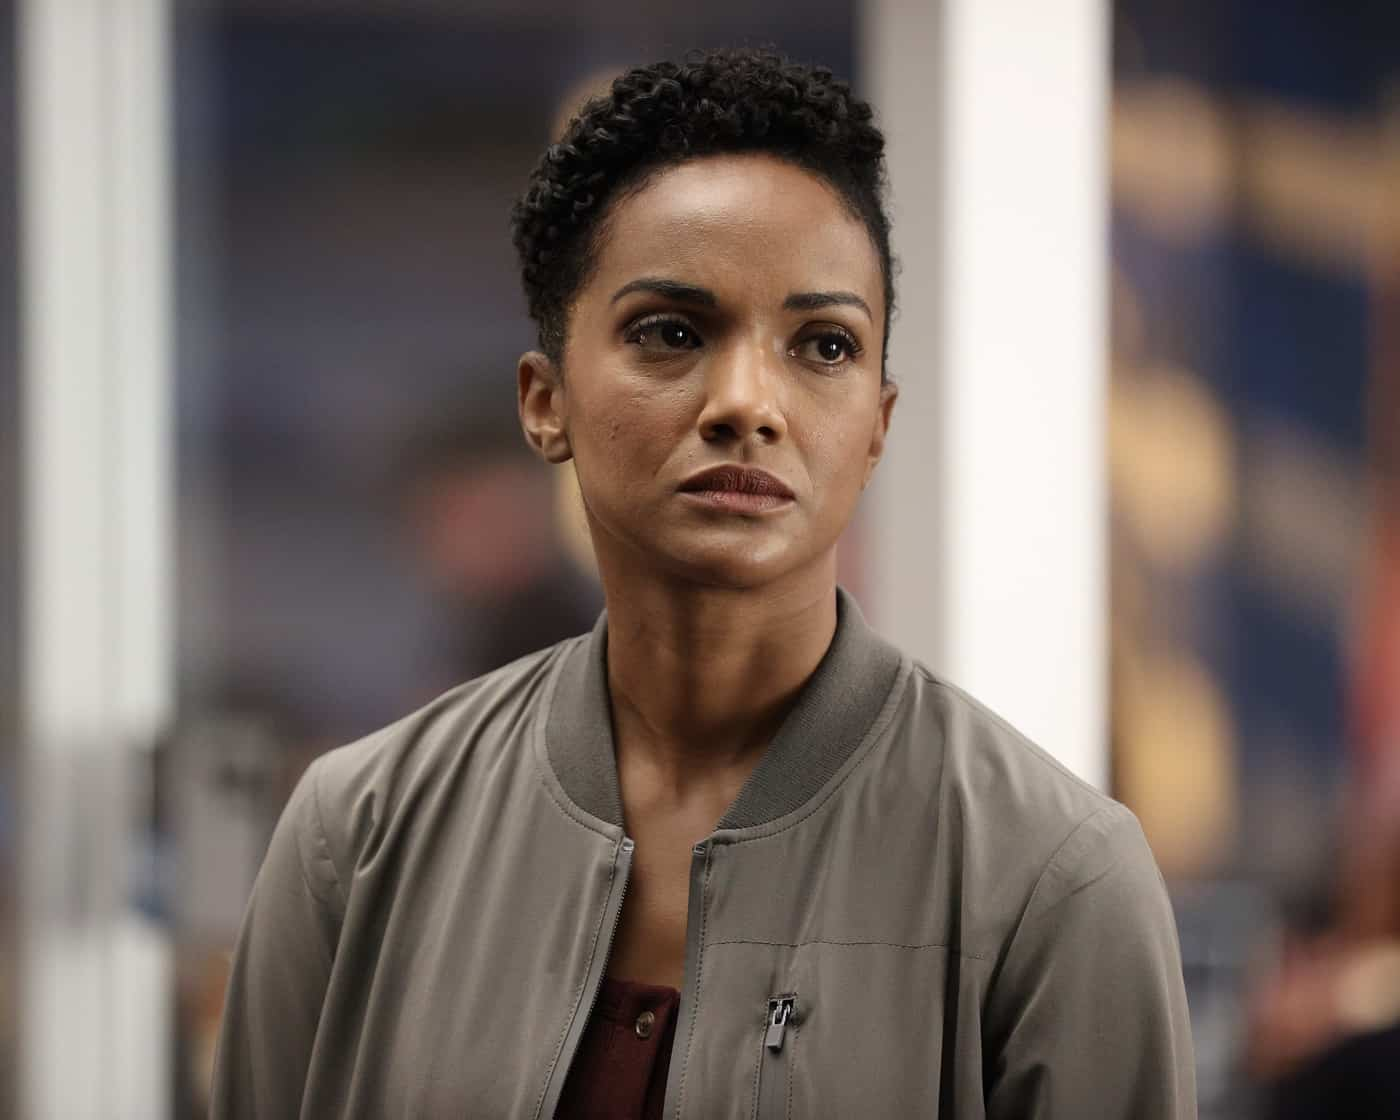 """THE ROOKIE Season 4 Episode 1 - """"Life and Death"""" – Officer Nolan and the entire team race against the clock to locate Lopez after she is kidnapped on her wedding day, not only to save her life but her unborn child's, on the season four premiere of """"The Rookie,"""" SUNDAY, SEPT. 26  (10:00-11:00 p.m. EDT), on ABC. (ABC/Raymond Liu) MEKIA COX"""